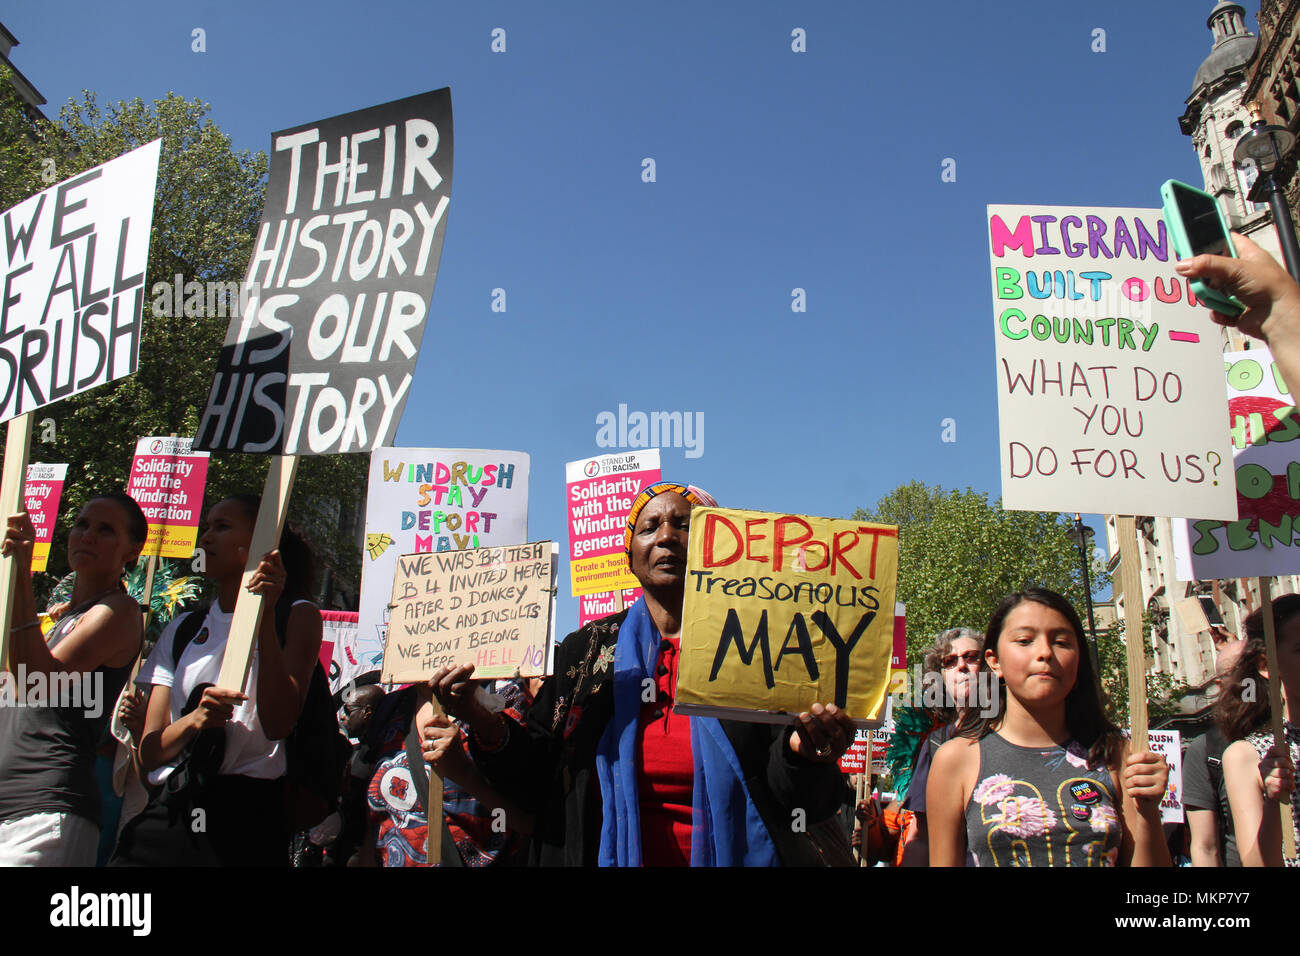 """Whitehall, London- UK: 5 May 2018. March for Windrush demonstrators seen during a demonstraion outside to the Home Office on 5th May, to protest against the """"Hostile environment"""" that has targeted the Windrush generation. A generation of people who were invited from Commonwealth countries as UK citizens have been subject to deportation from  the UK. Credit: David Mbiyu /Alamy Live News - Stock Image"""